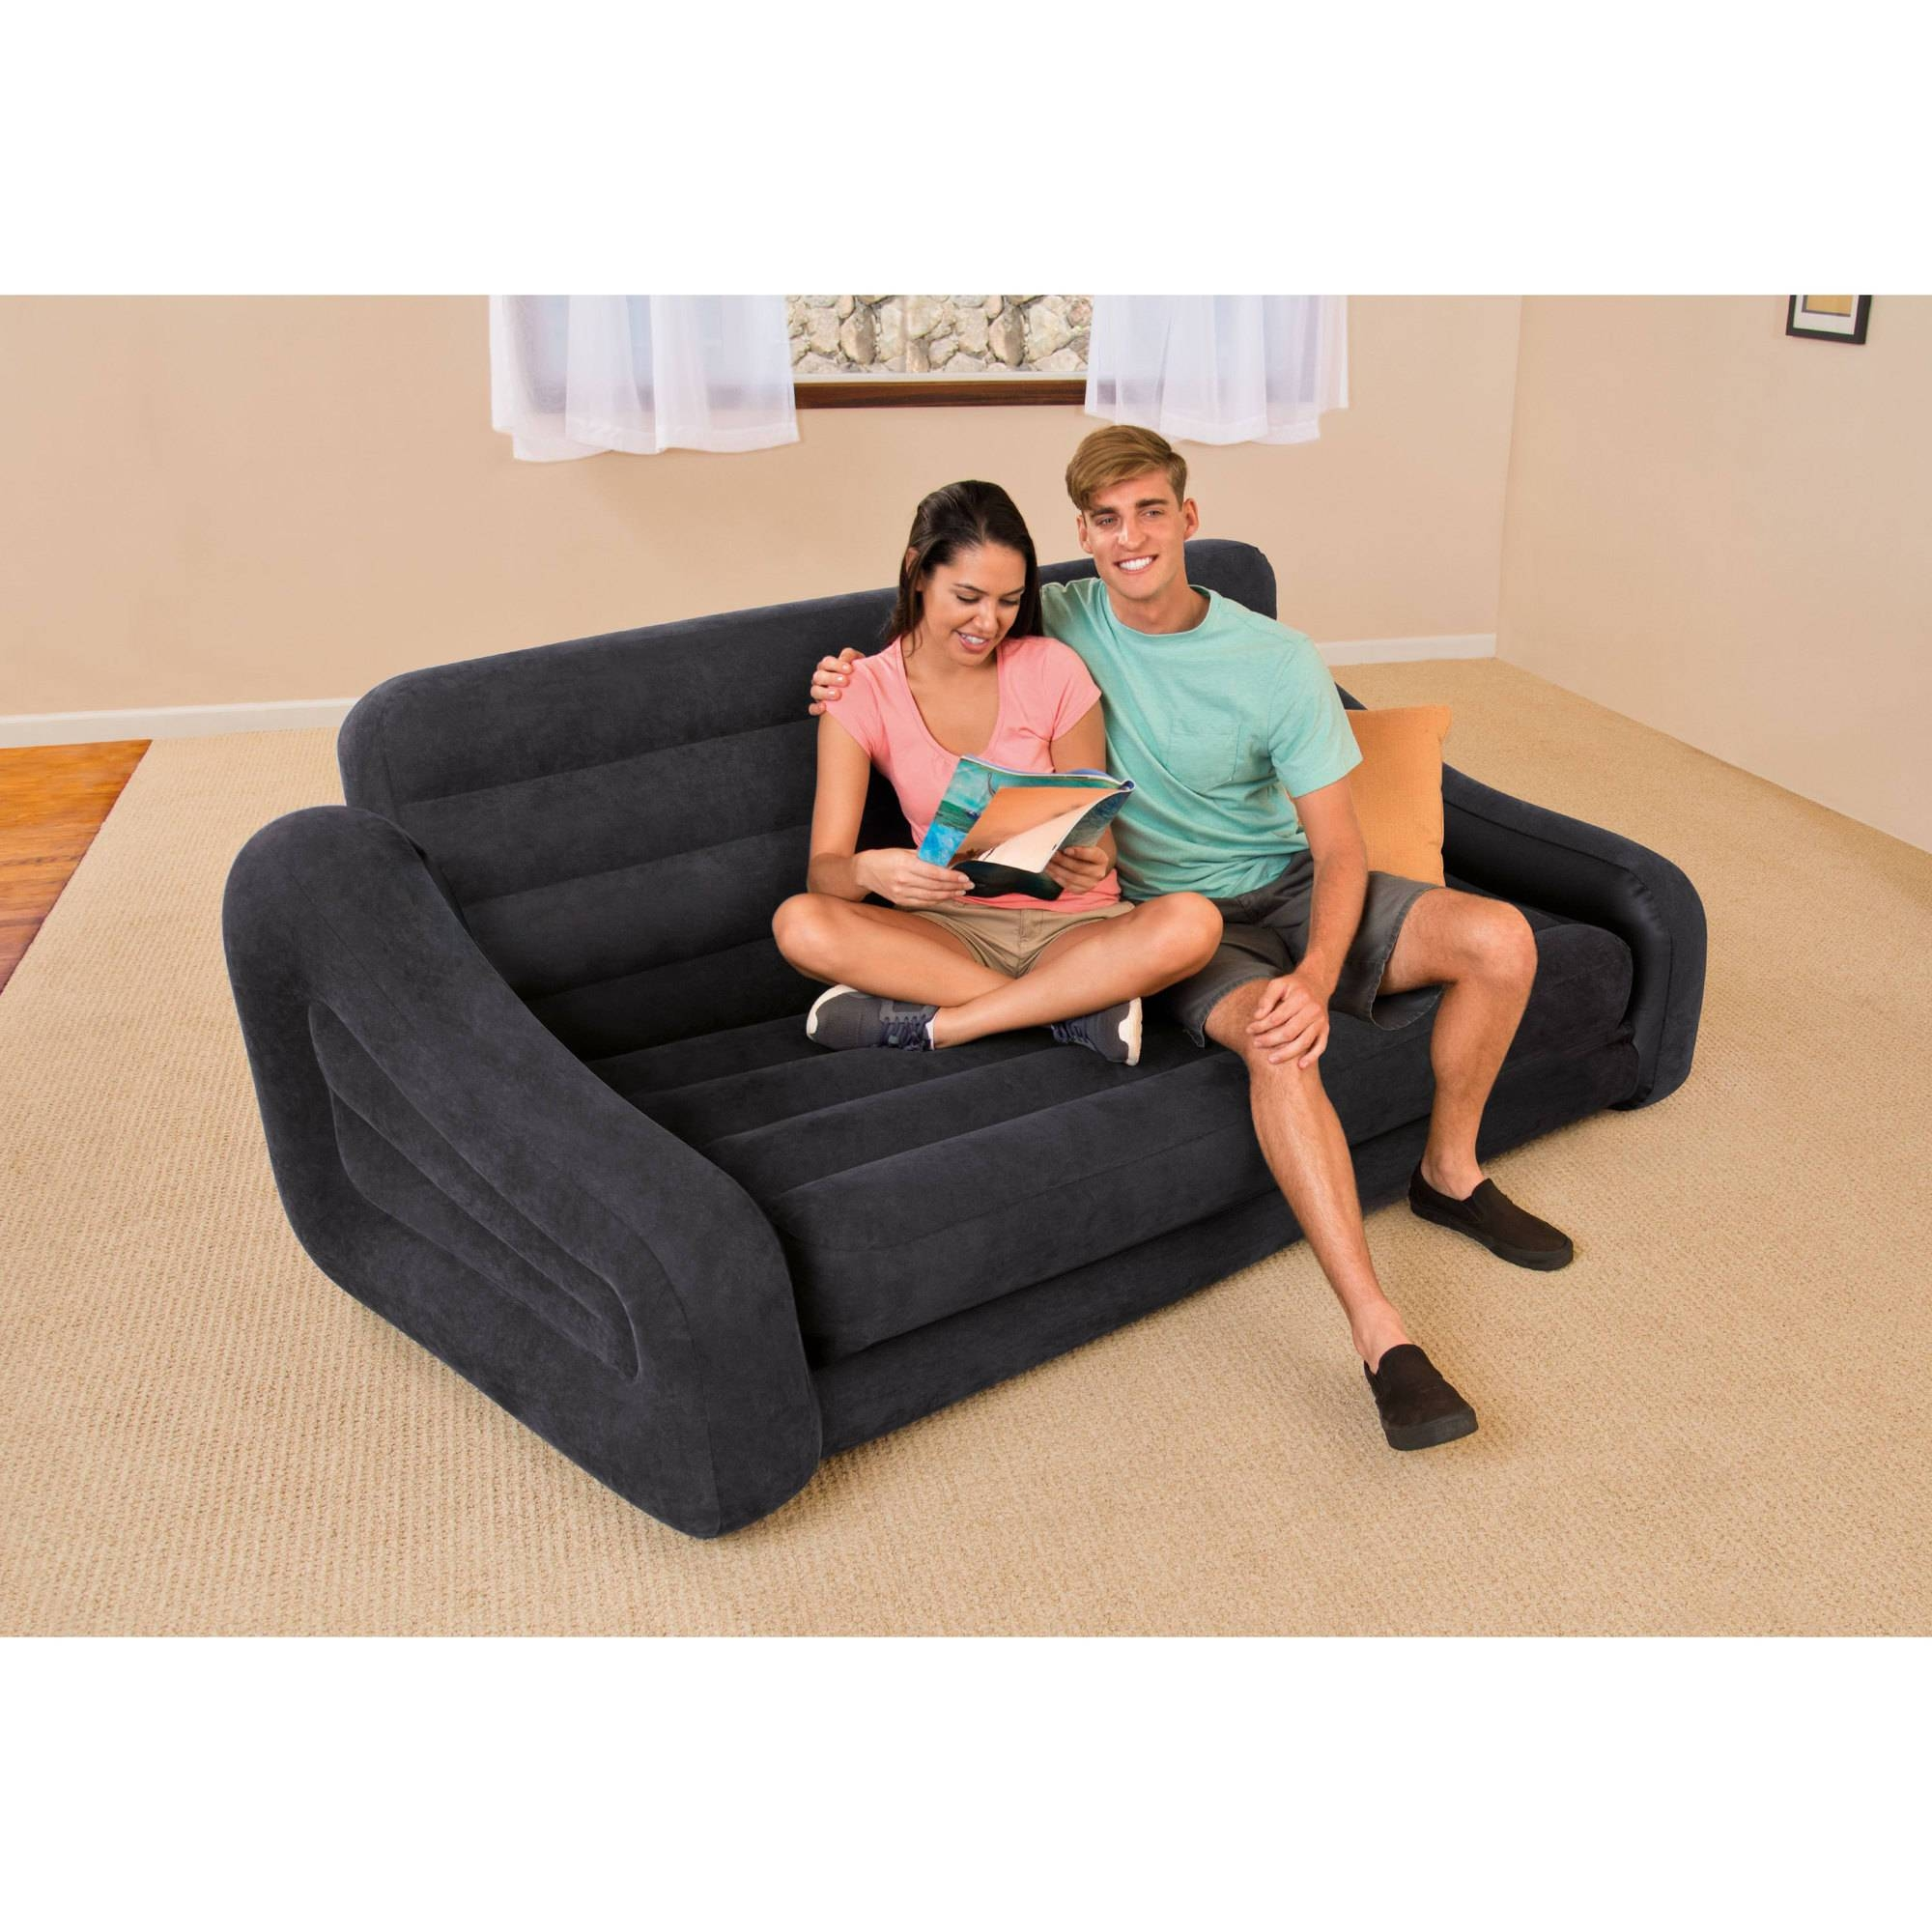 Intex Queen Inflatable Pull Out Sofa Bed - Walmart for Intex Air Couches (Image 12 of 15)